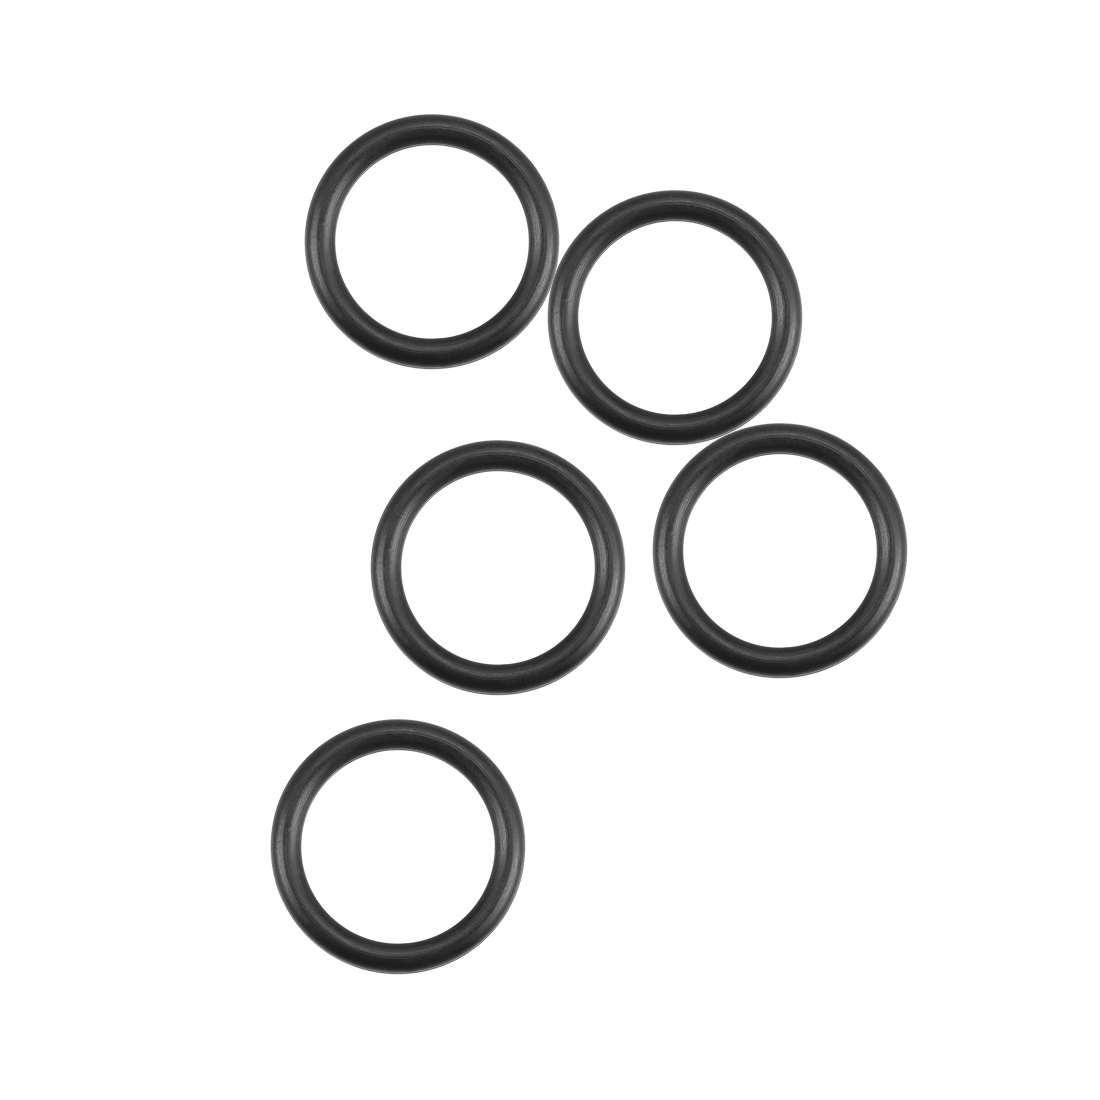 O-Rings Nitrile Rubber 9.75mm x 13.35mm x 1.8mm Round Seal Gasket 5 Pcs